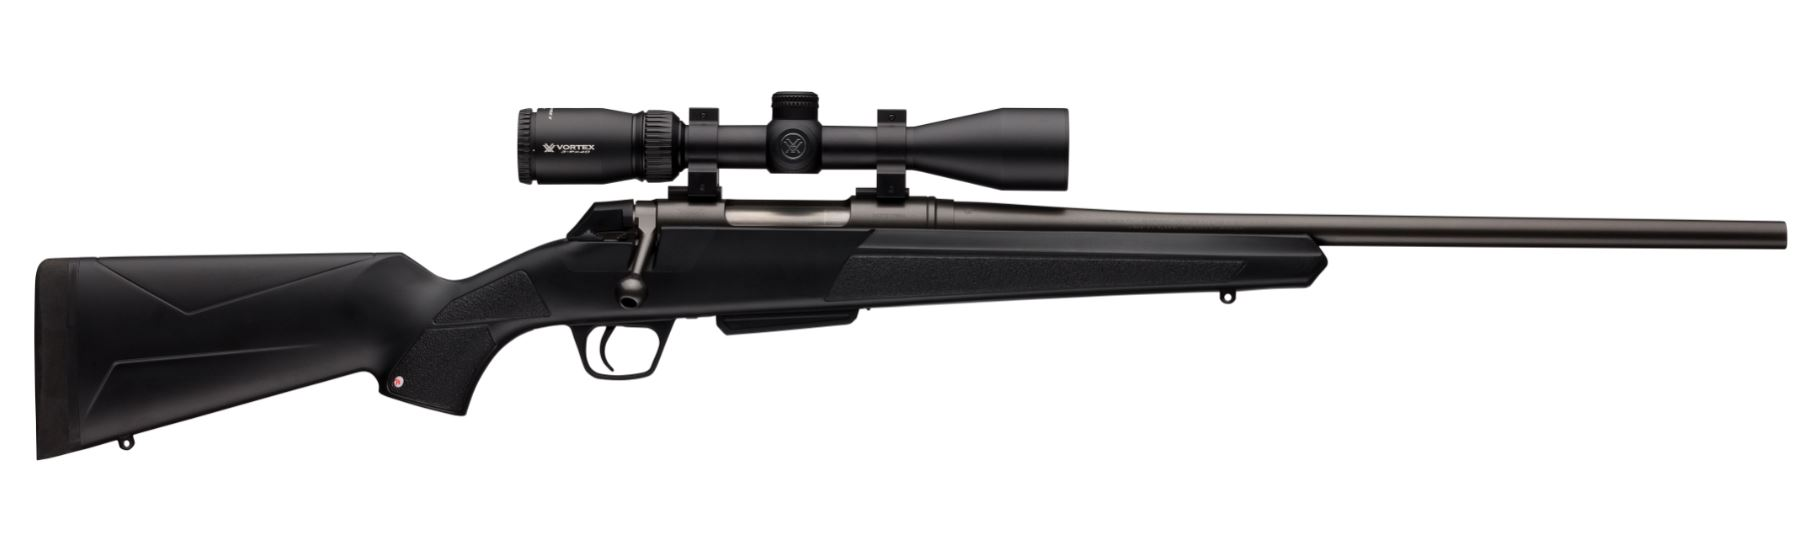 Winchester XPR VORTEX SCOPE COMBO 243 WIN